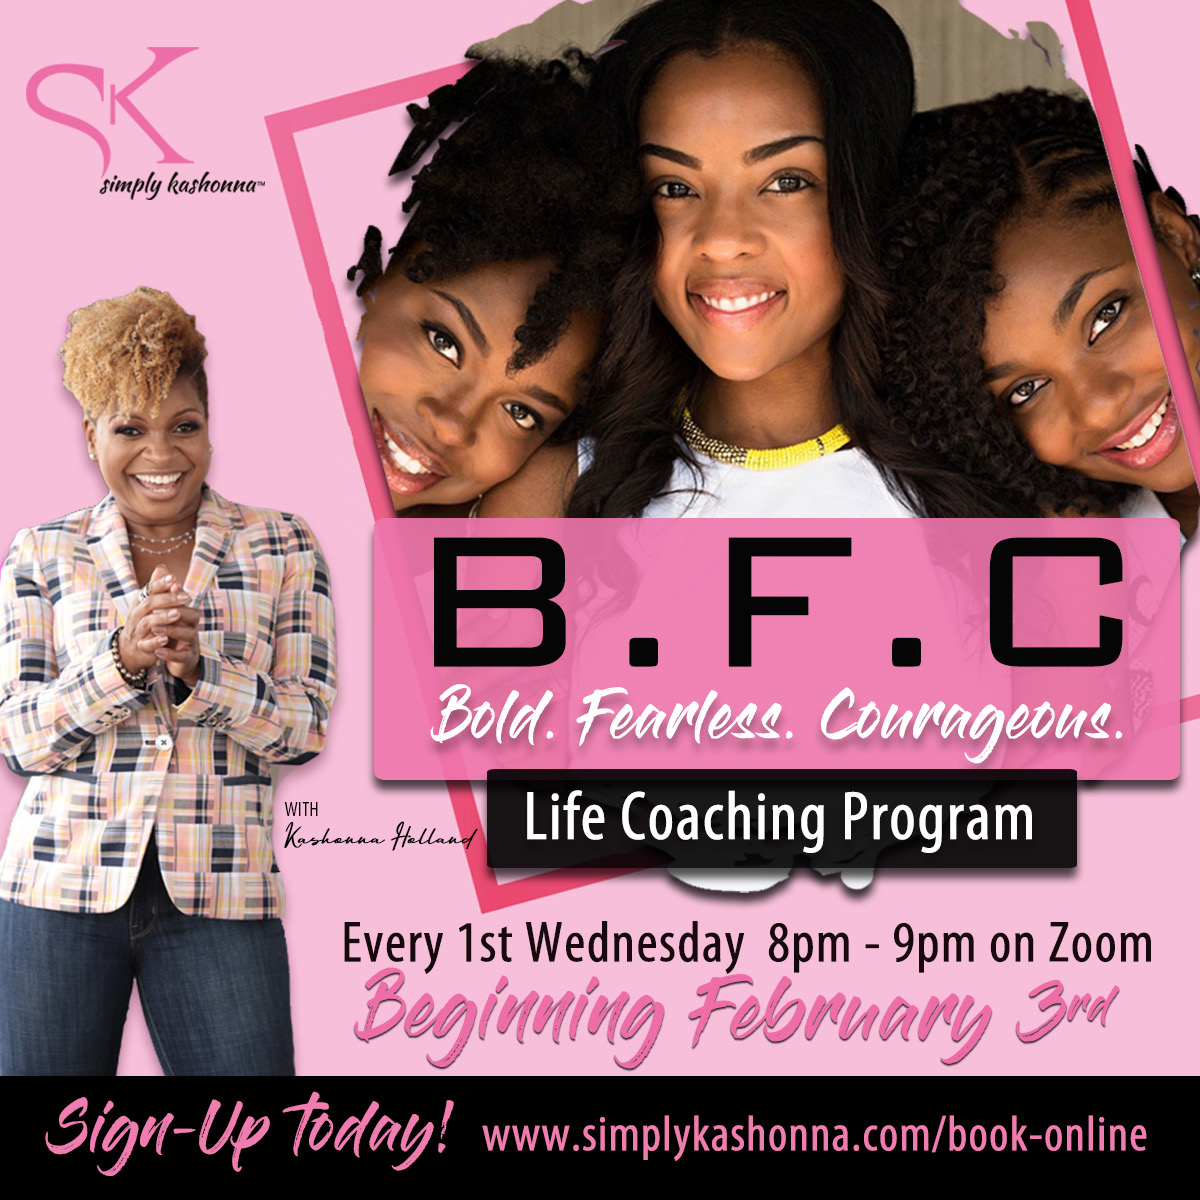 Visit  to purchase your group coaching plan by January 31st and lock in this special pricing for a 6 or 12-month plan.   #simplykashonna #leadership #lifecoaching #womeninleadership #businessleaders#gamechanger#empowerment #businessleader